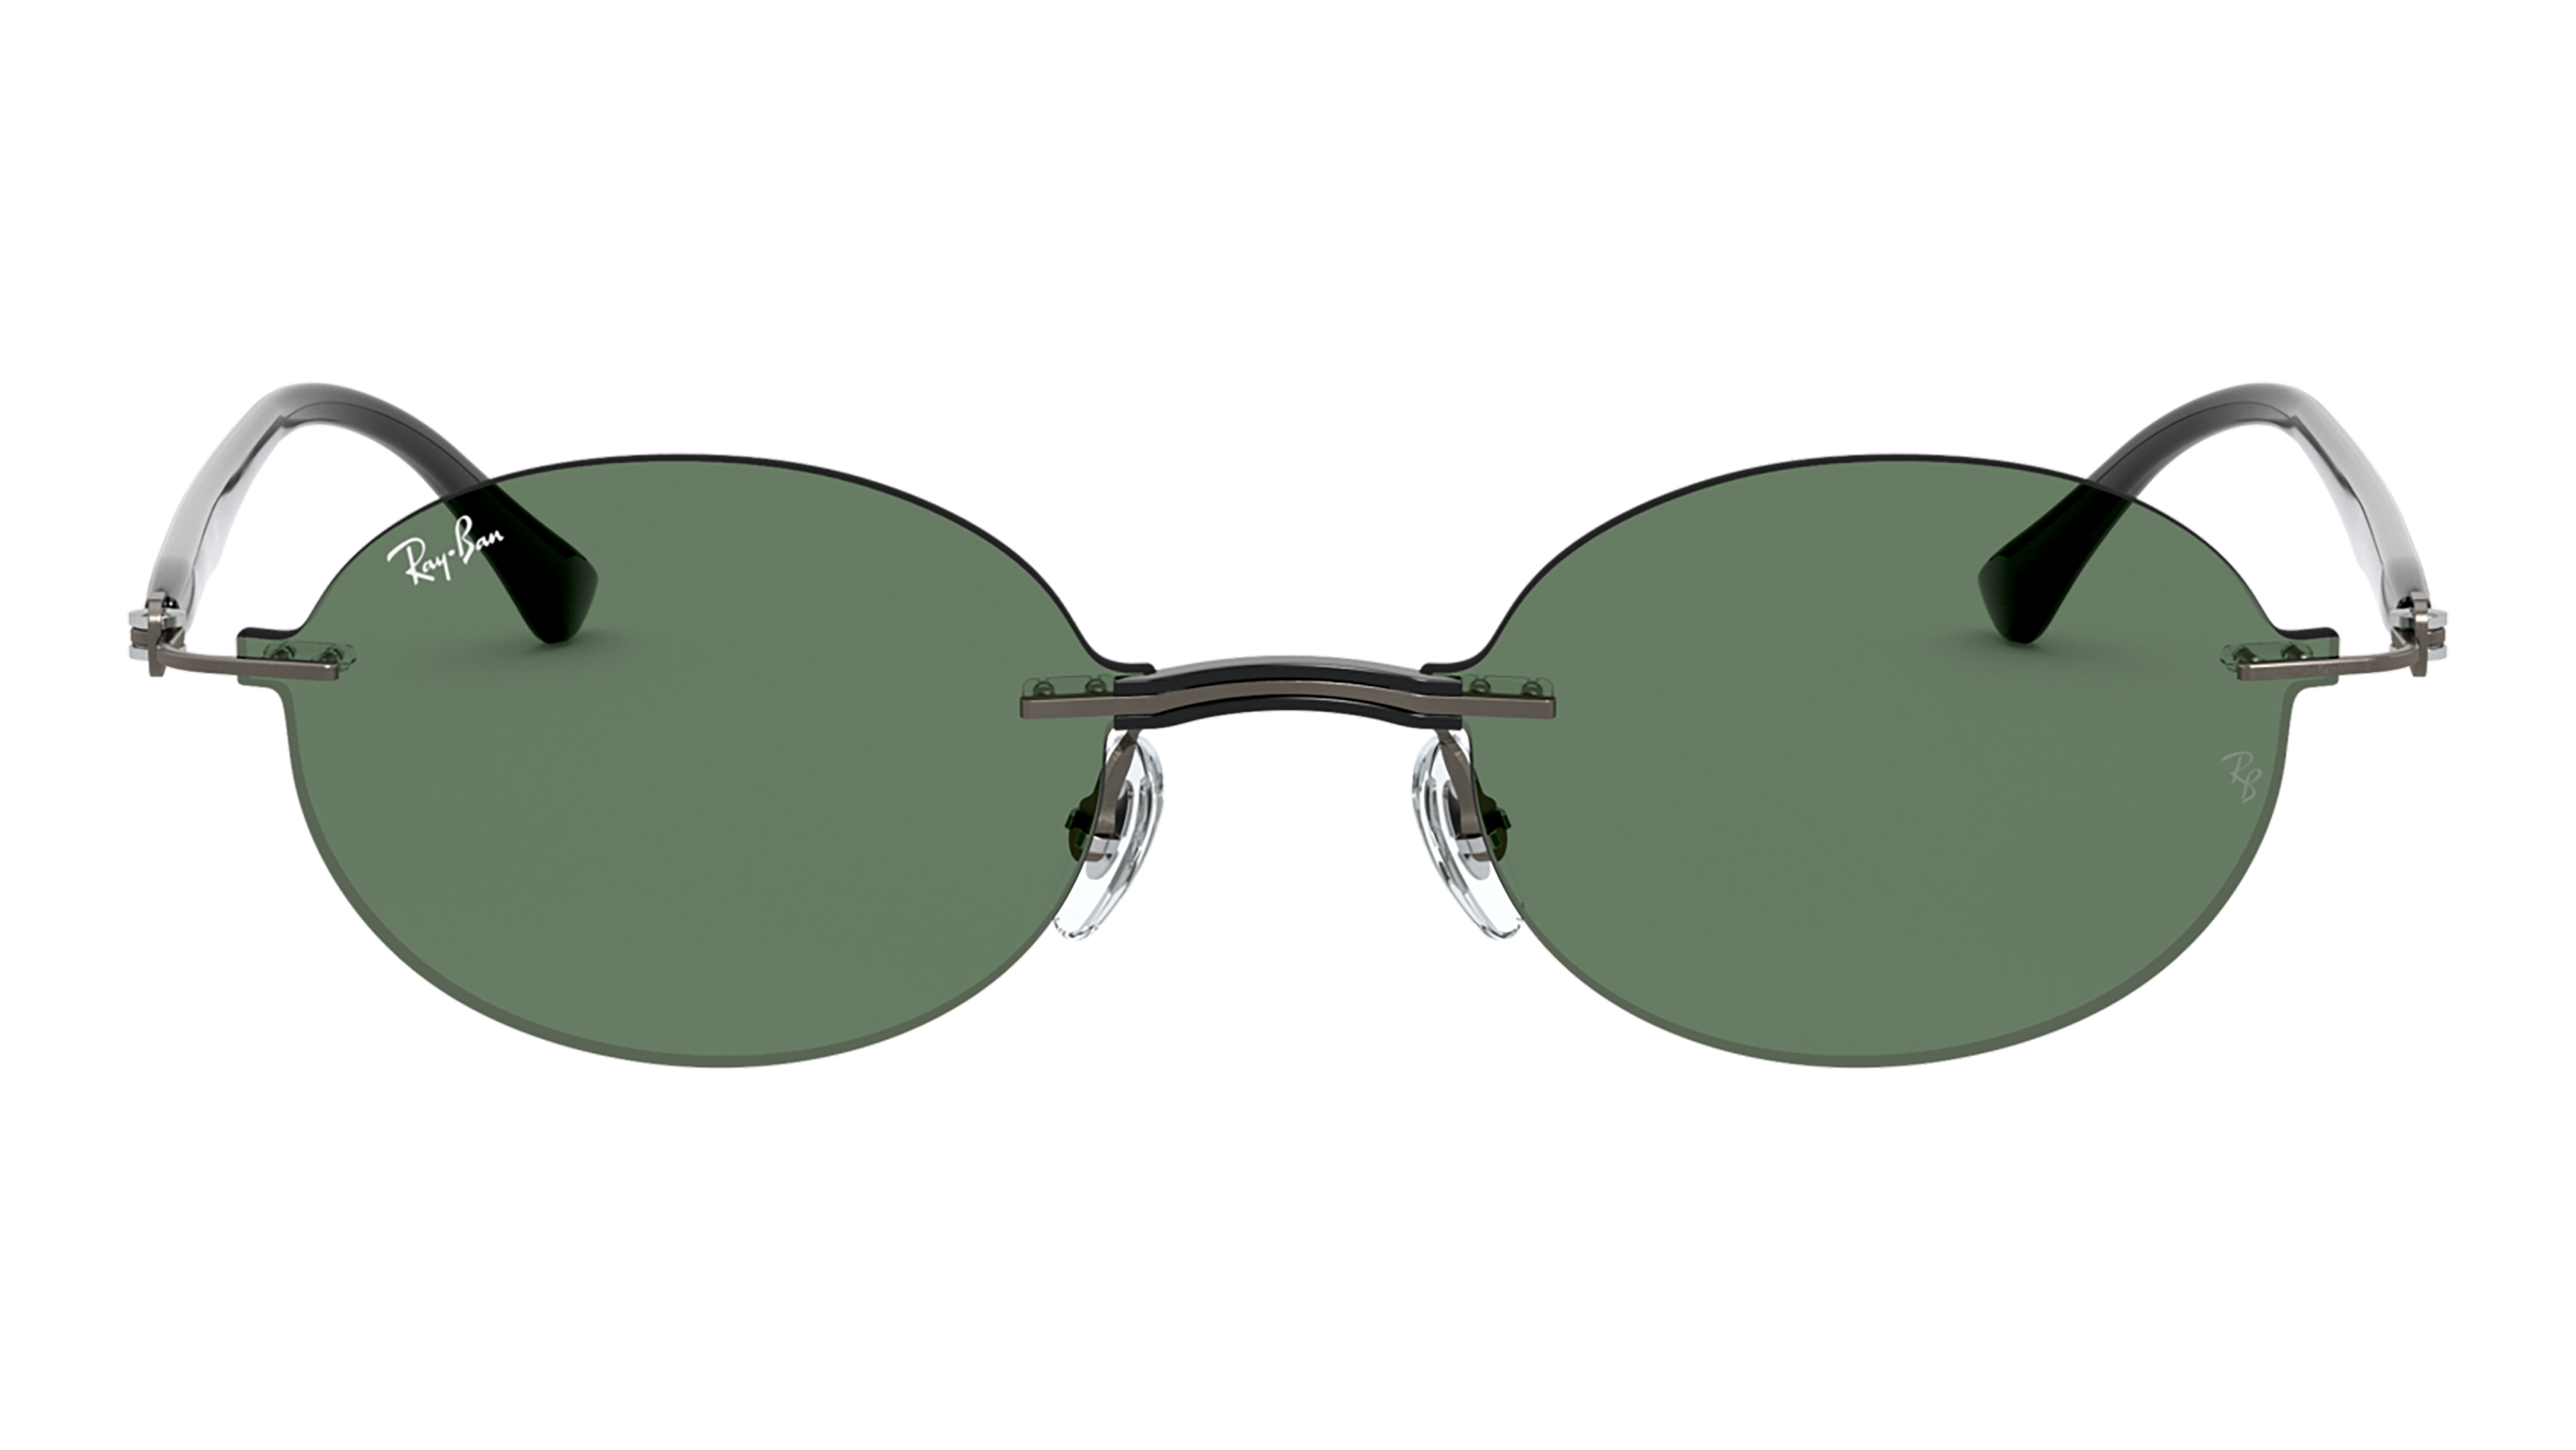 Front Ray-Ban Ray-Ban 0RB8060 154/71 54/15 Transparant, Zilver/Groen